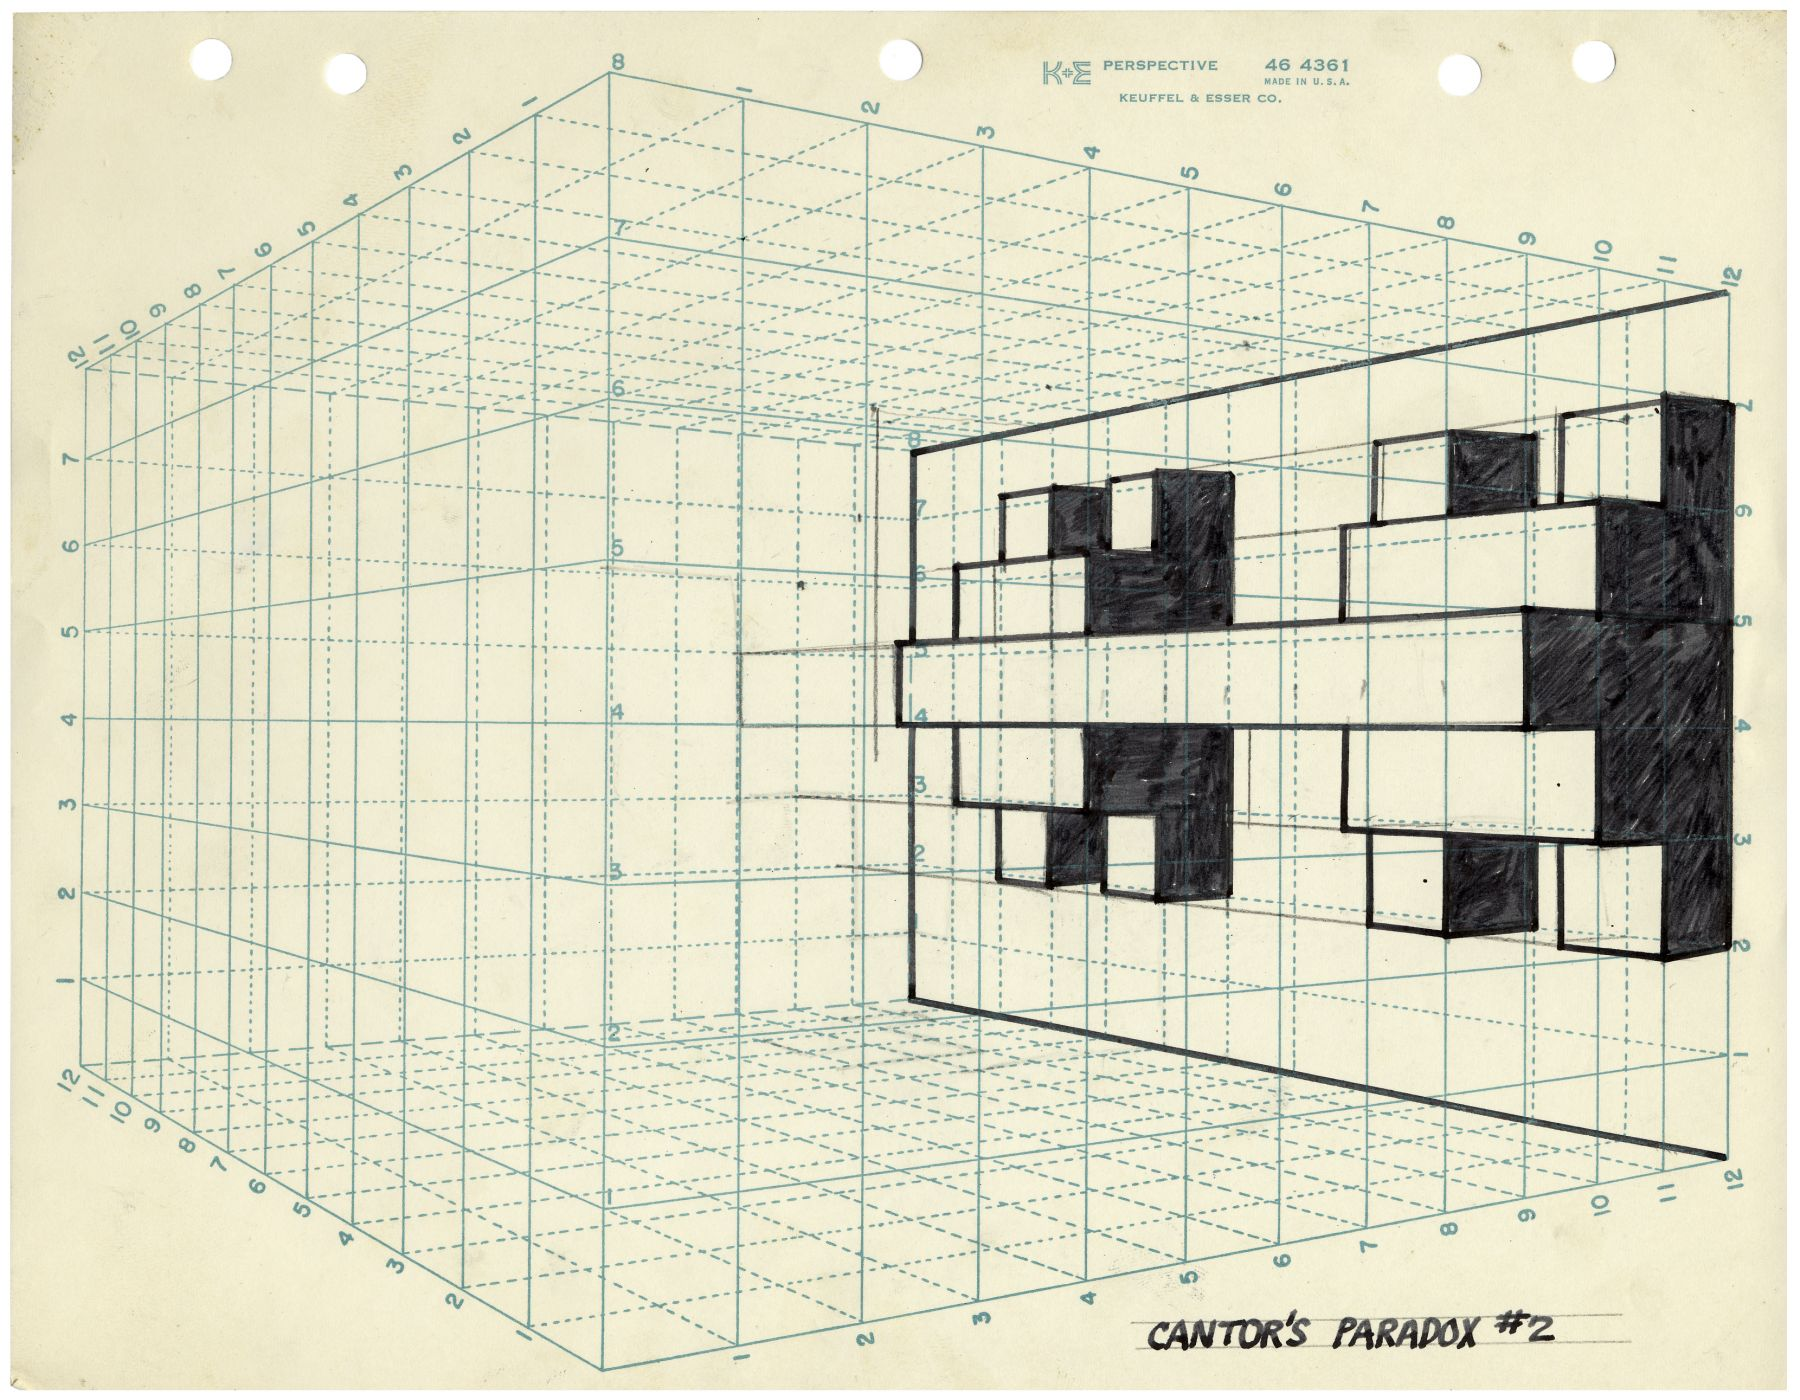 Mel Bochner,Cantor's Paradox #2,1966. Ink and pencil on graph paper, 8 1/2 x 11 inches.